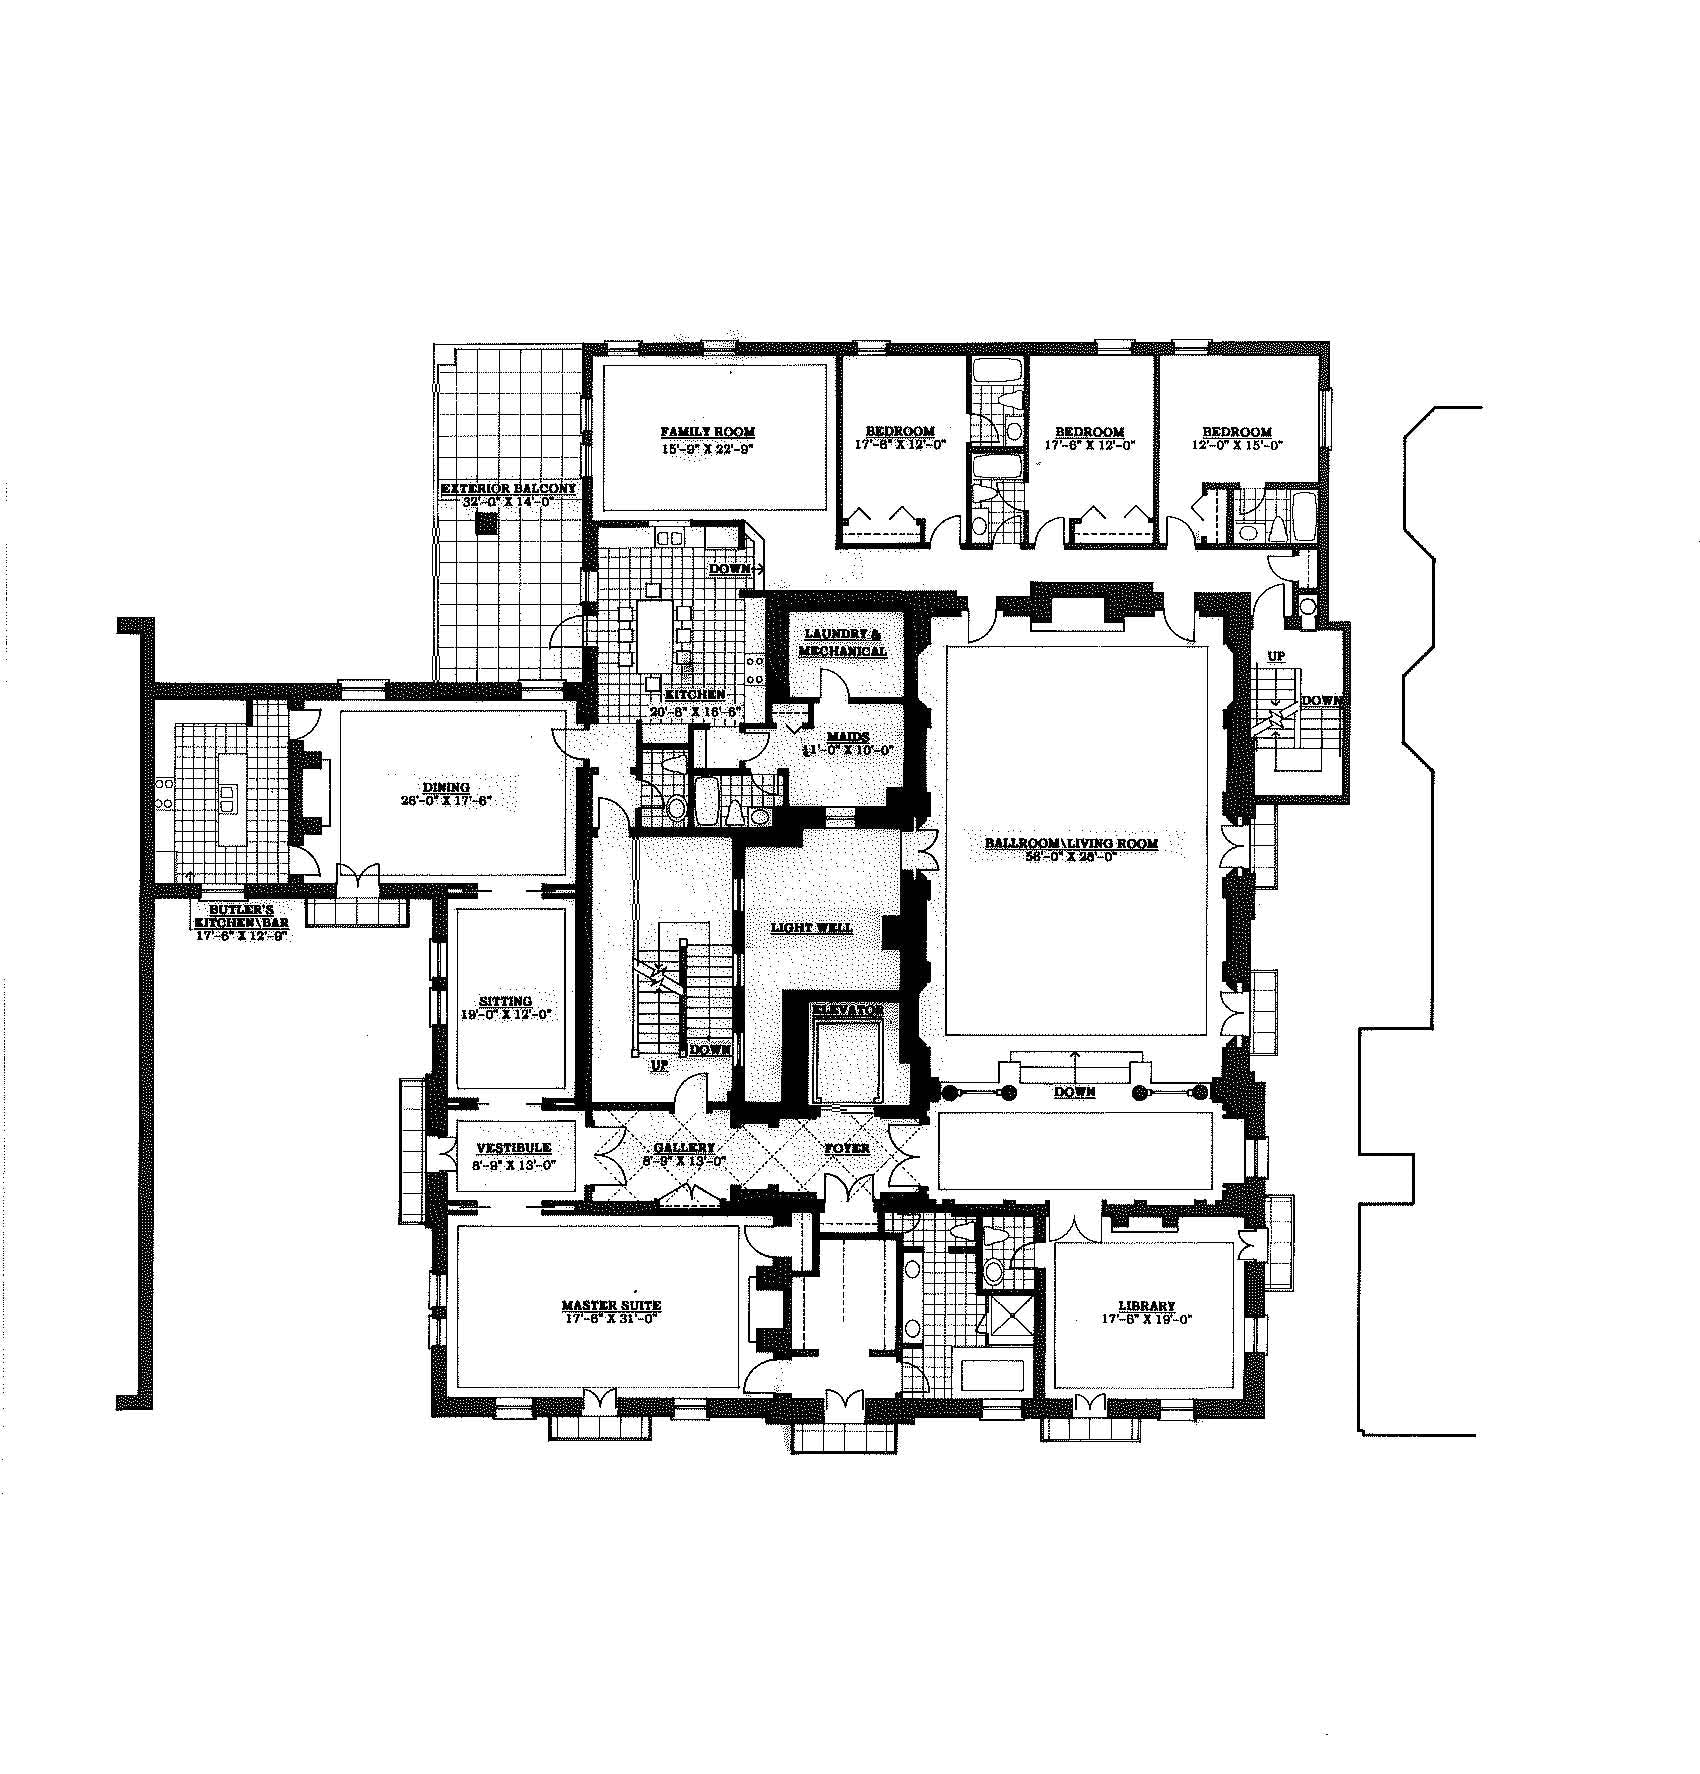 Dutch Colonial Floor Plans moreover 406309197605710905 further Alphabet houses together with 25 Million Historic Mansion In San Francisco Ca besides Waterford Residence Floor Plan. on gold coast mansion floor plans